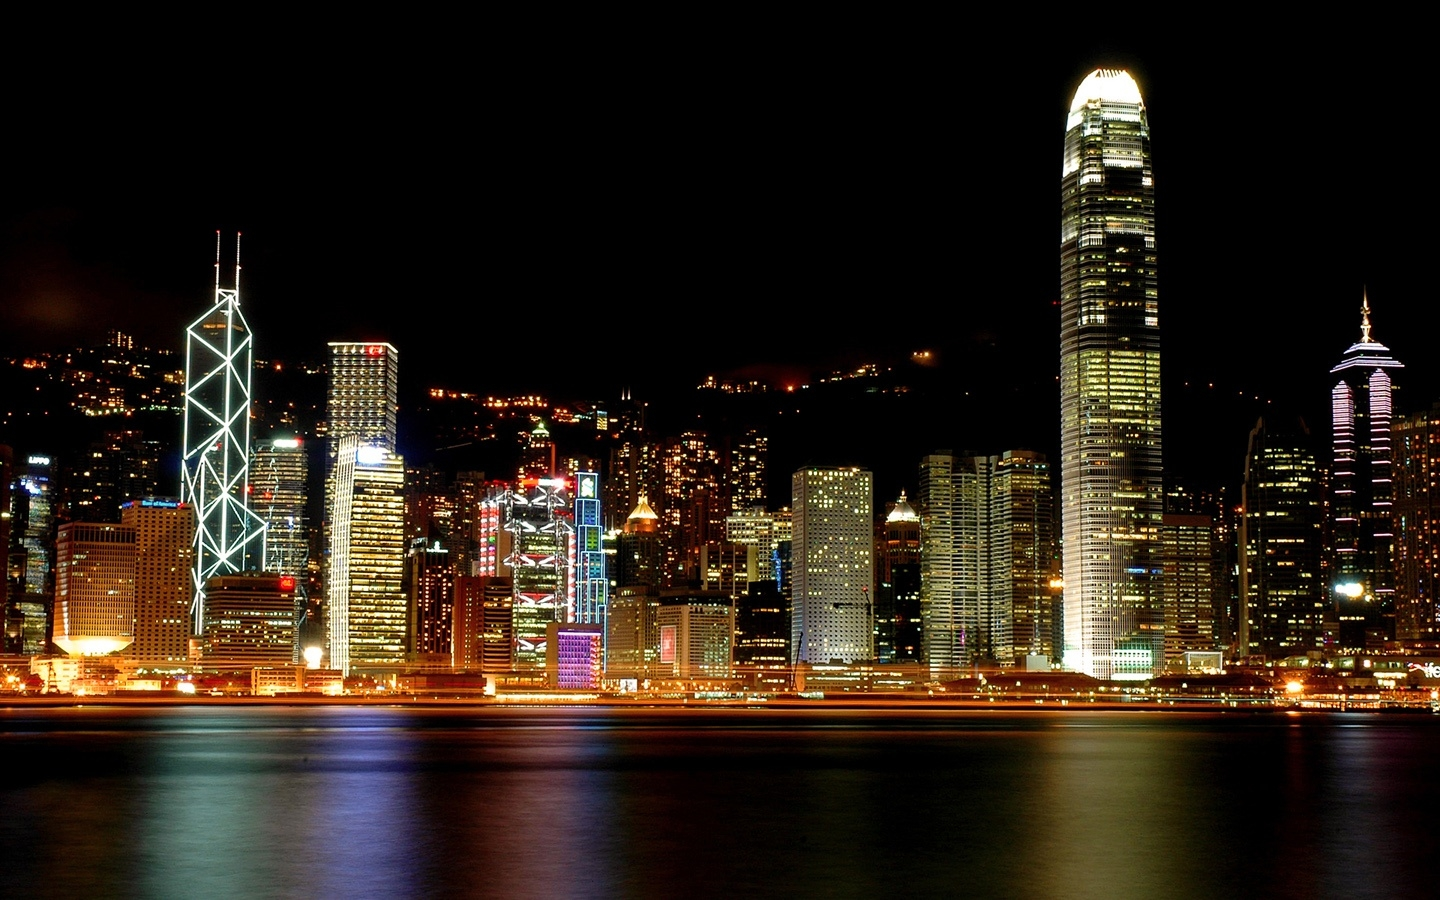 Beautiful Night City Wallpaper Computer Desktop 1235788